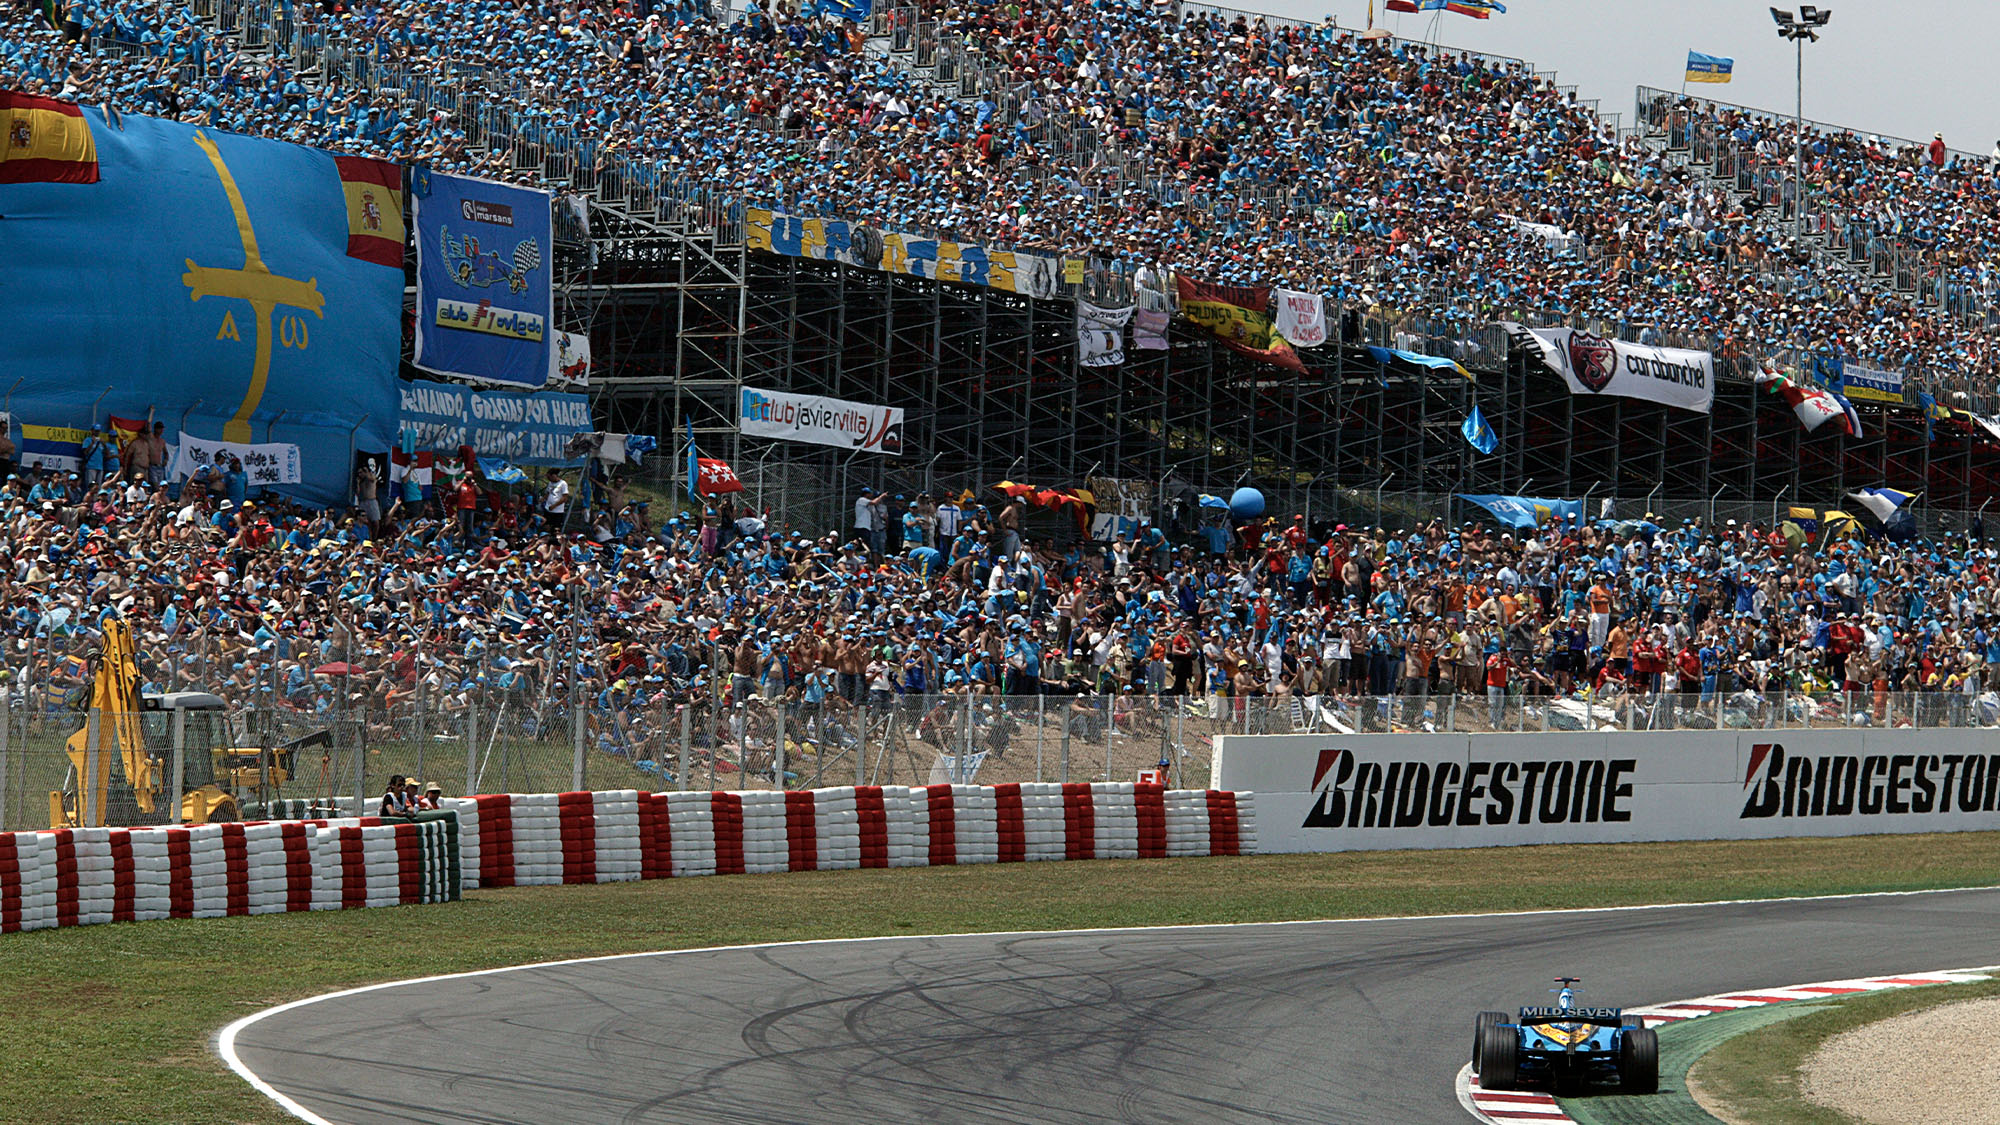 Fernando Alonso on his way to victory in front of a vast crowd at the Circuit de Catalunya during the 2006 Spanish Grand Prix